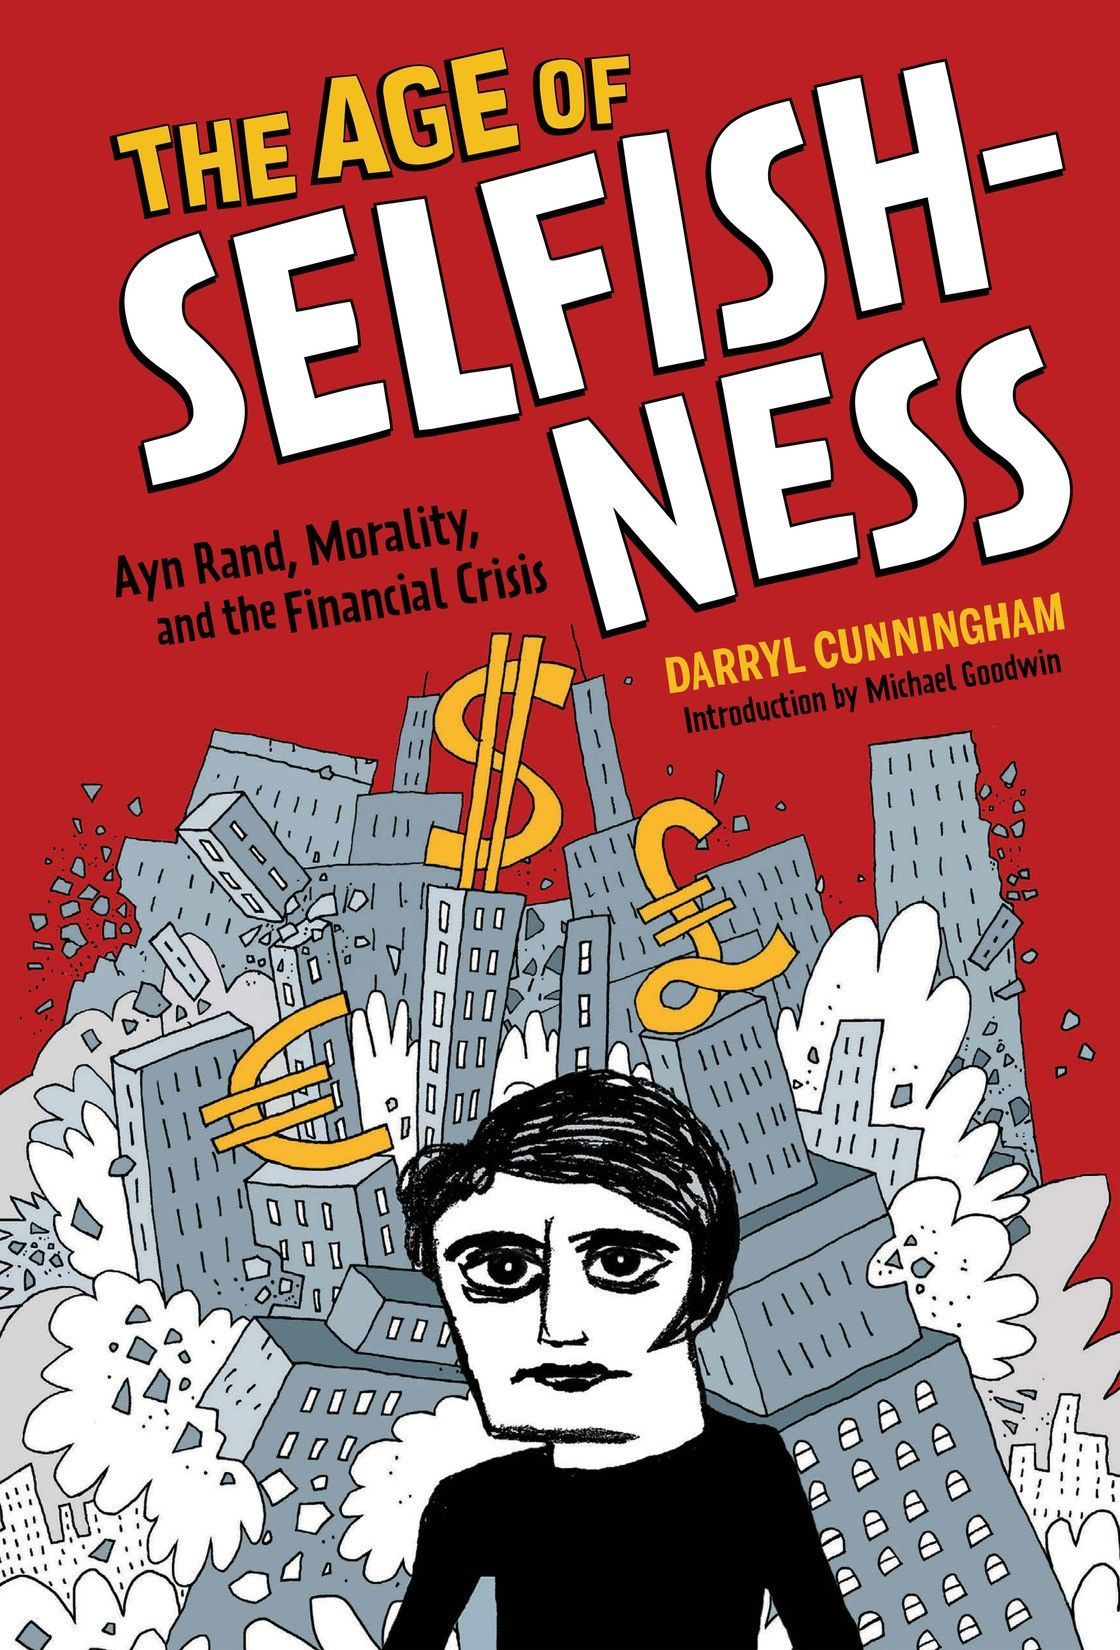 The age of selfishness ayn rand morality and the financial crisis the age of selfishness ayn rand morality and the financial crisis fandeluxe Images